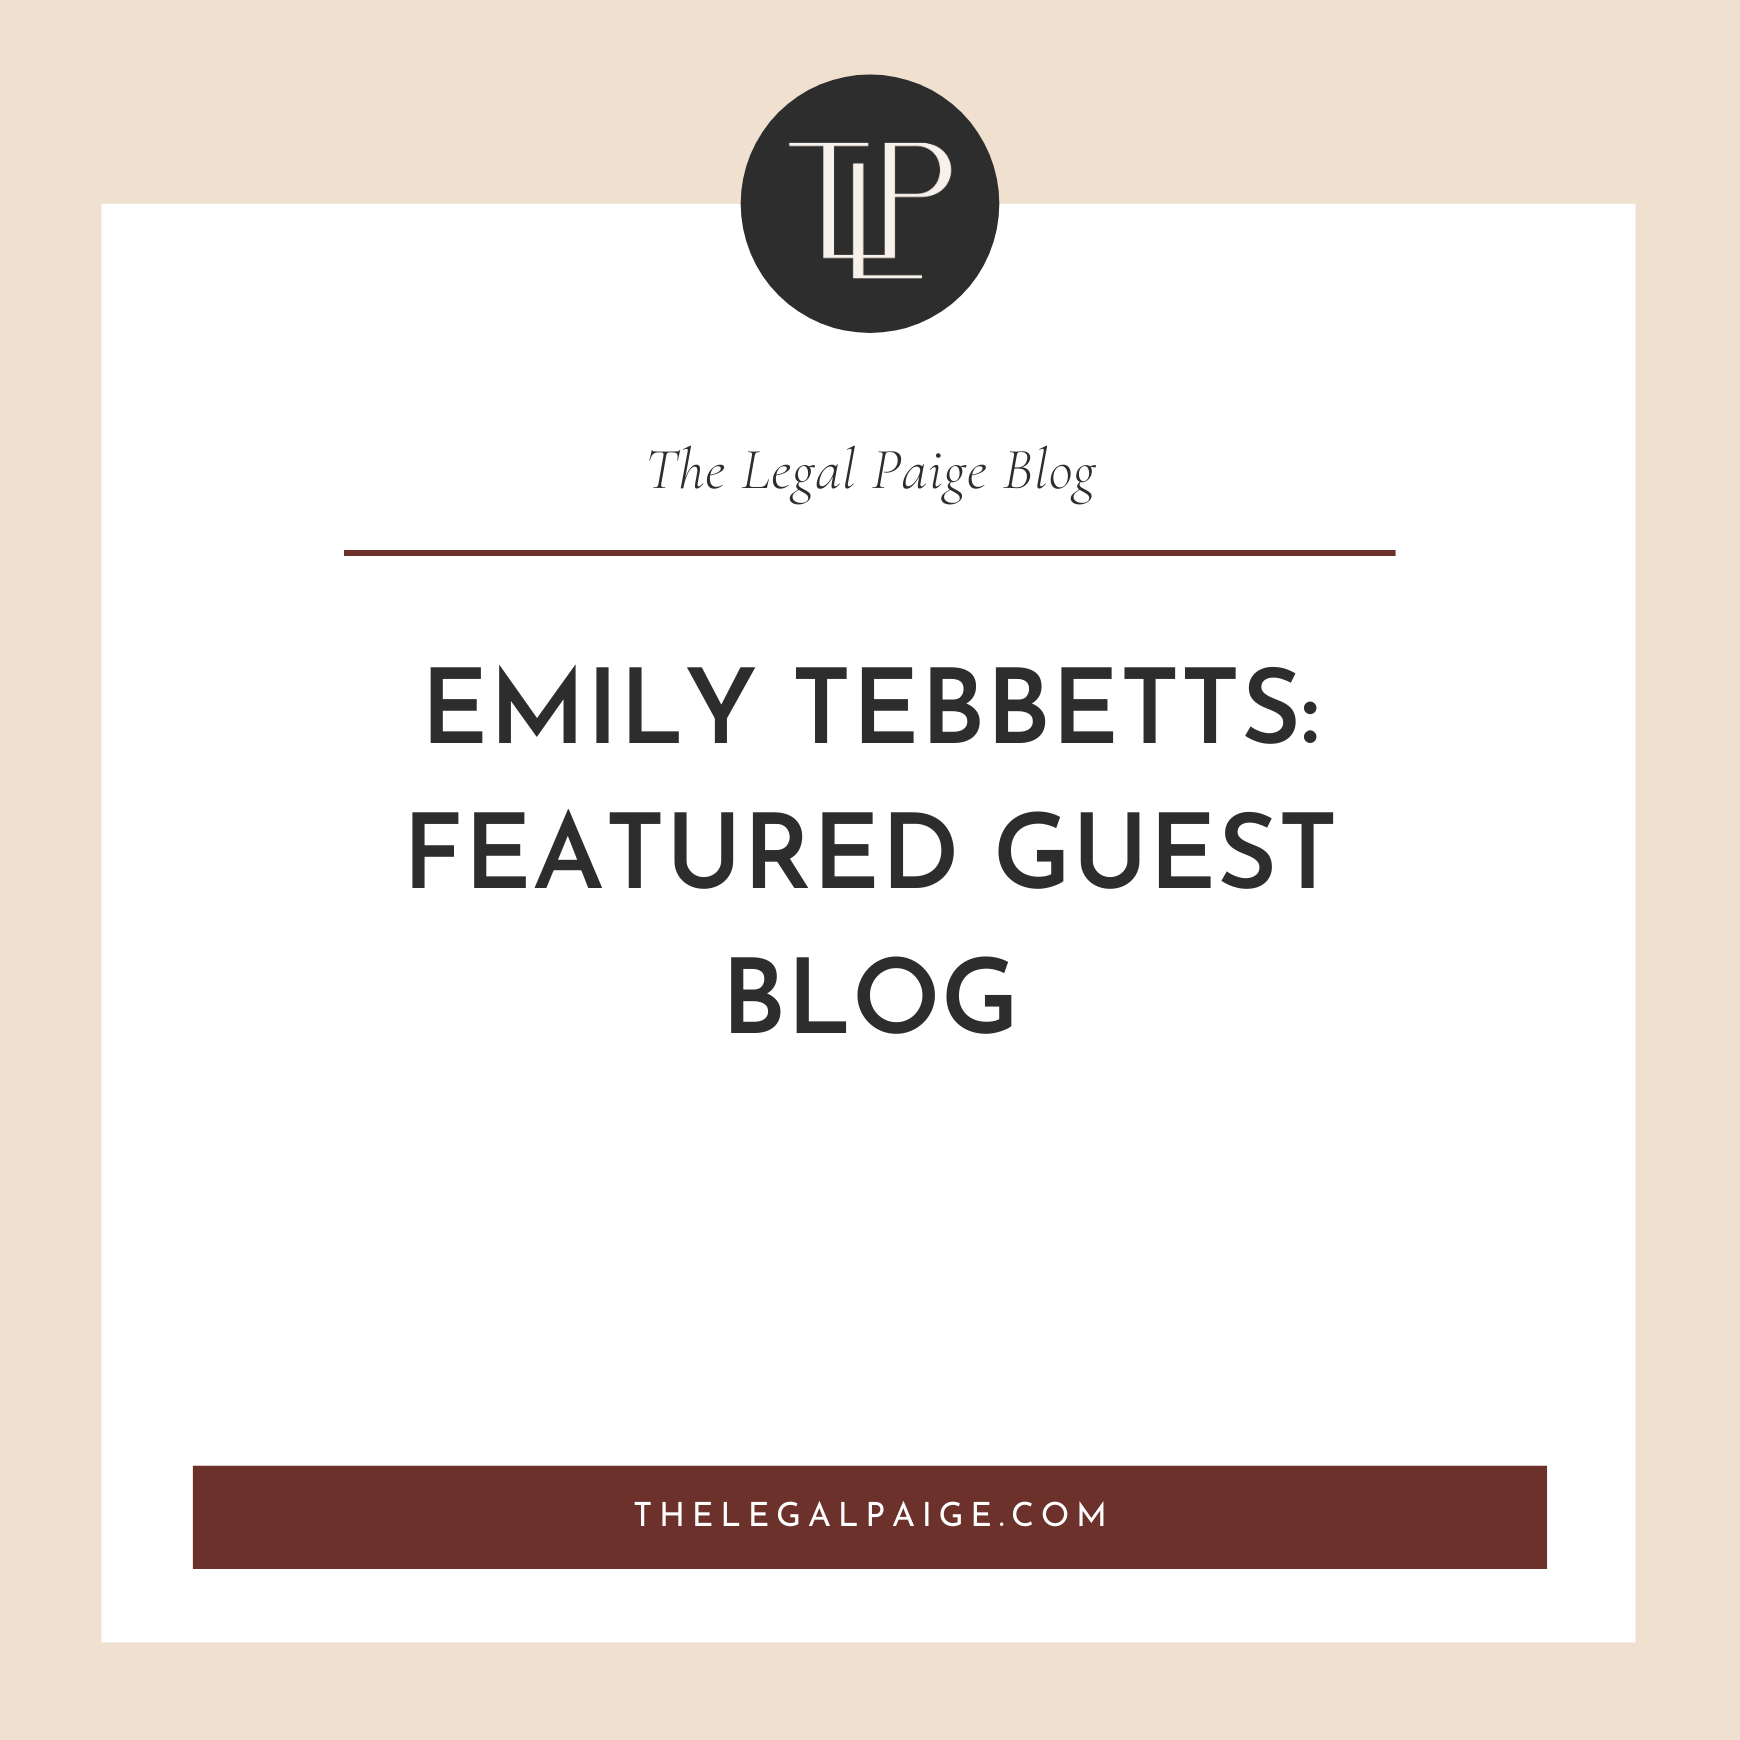 Emily Tebbetts: Featured Guest Blog